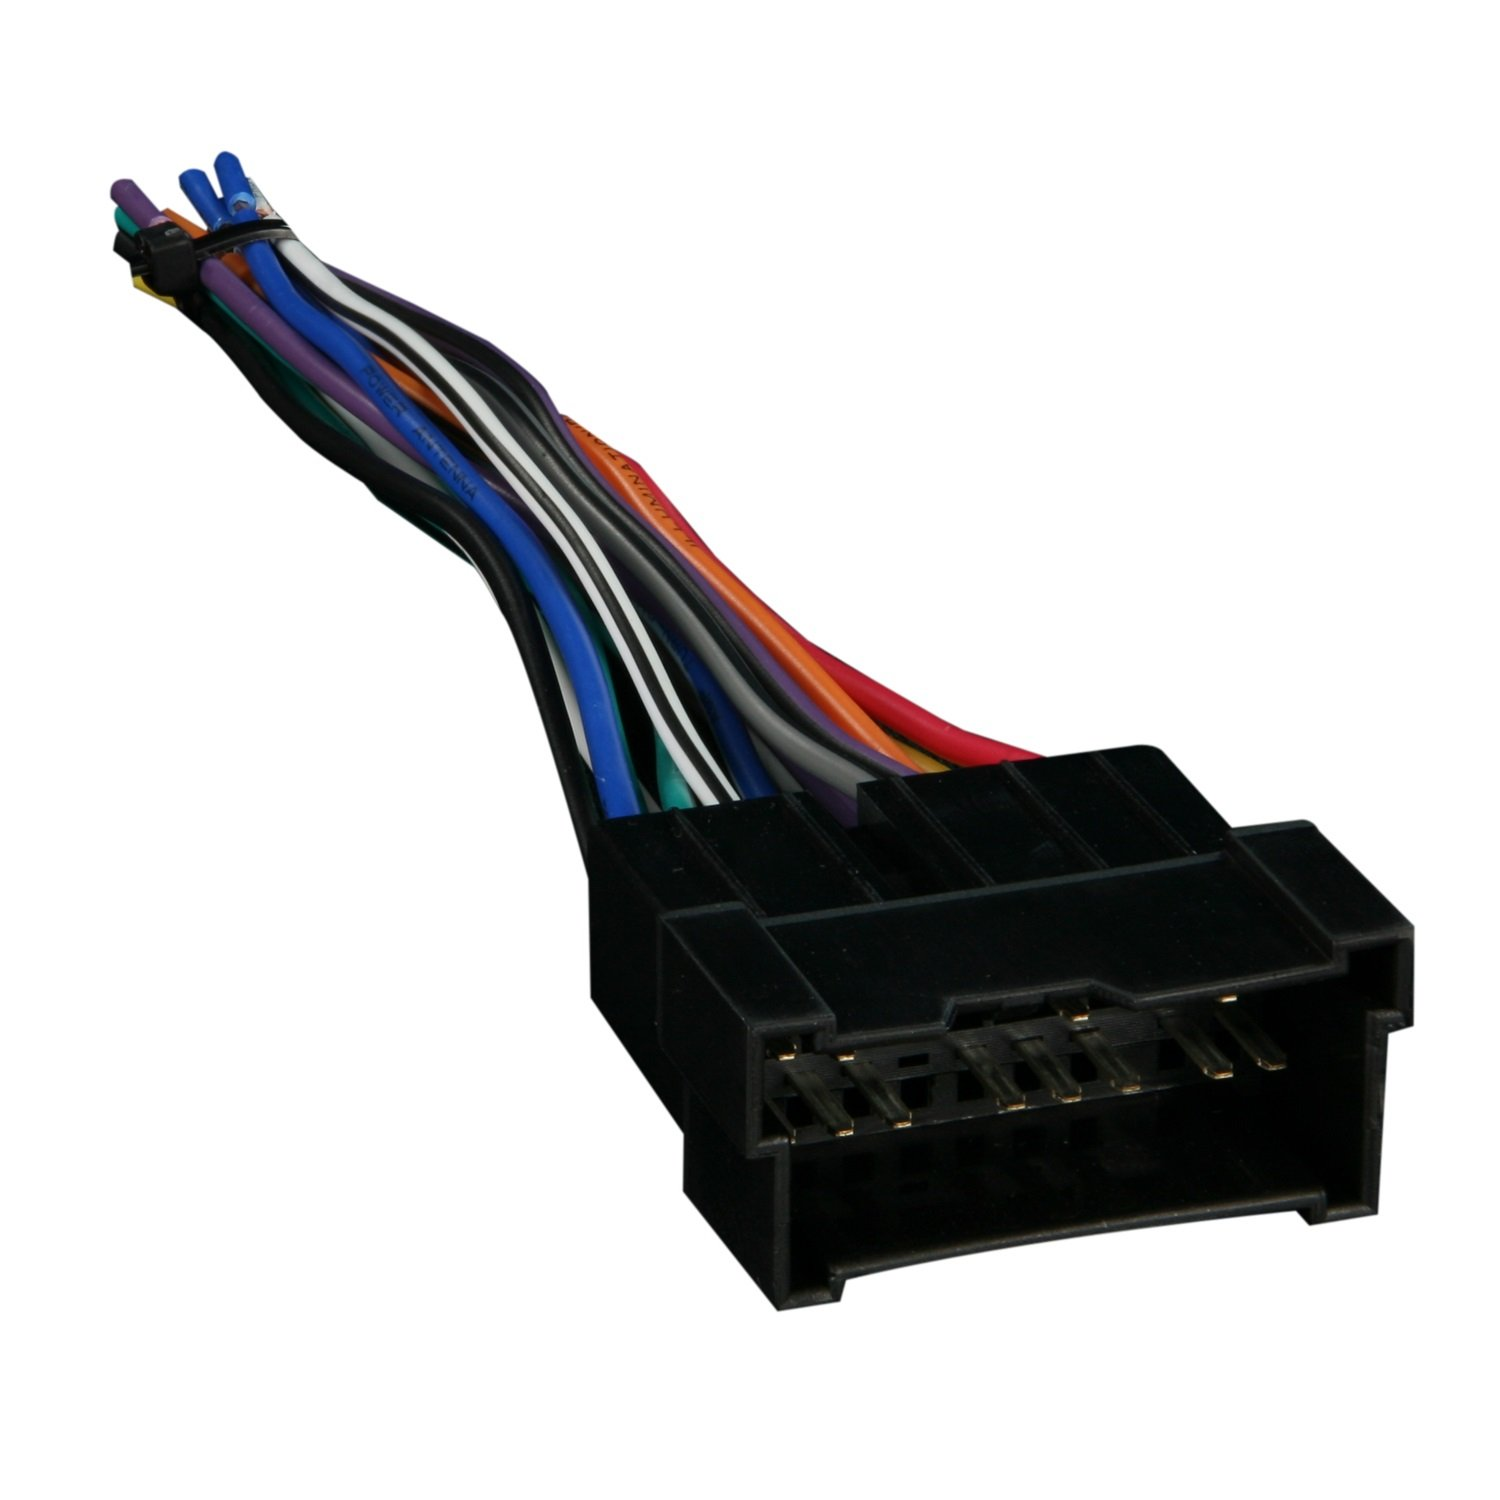 617yeBmOquL._SL1500_ amazon com metra 70 7301 radio wiring harness for hyundai kia 99 wire harness doesn't fit at crackthecode.co